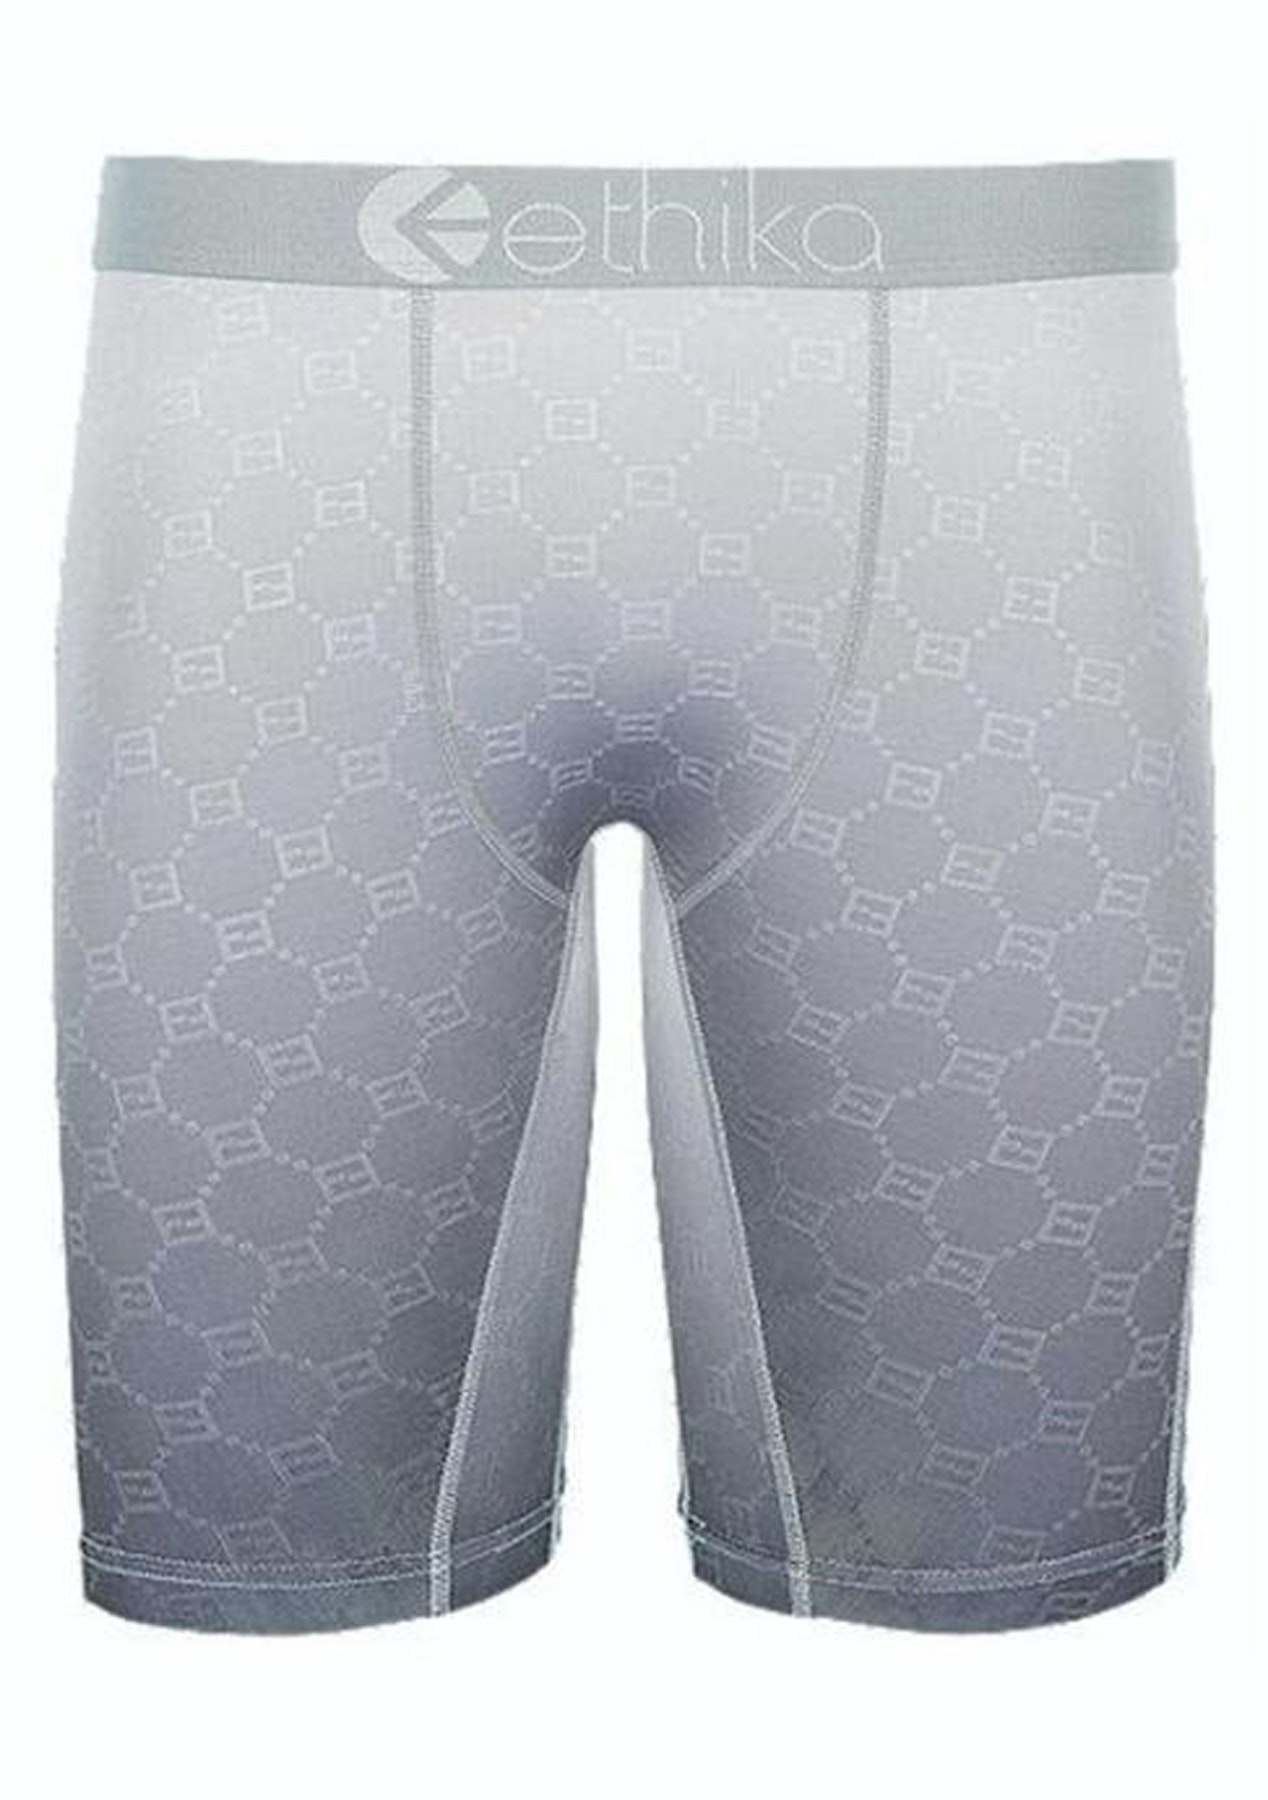 5e15bd29da Ethika Mens - Special Package Staple - Free Shipping Ethika Underwear up to  55% off - Onceit